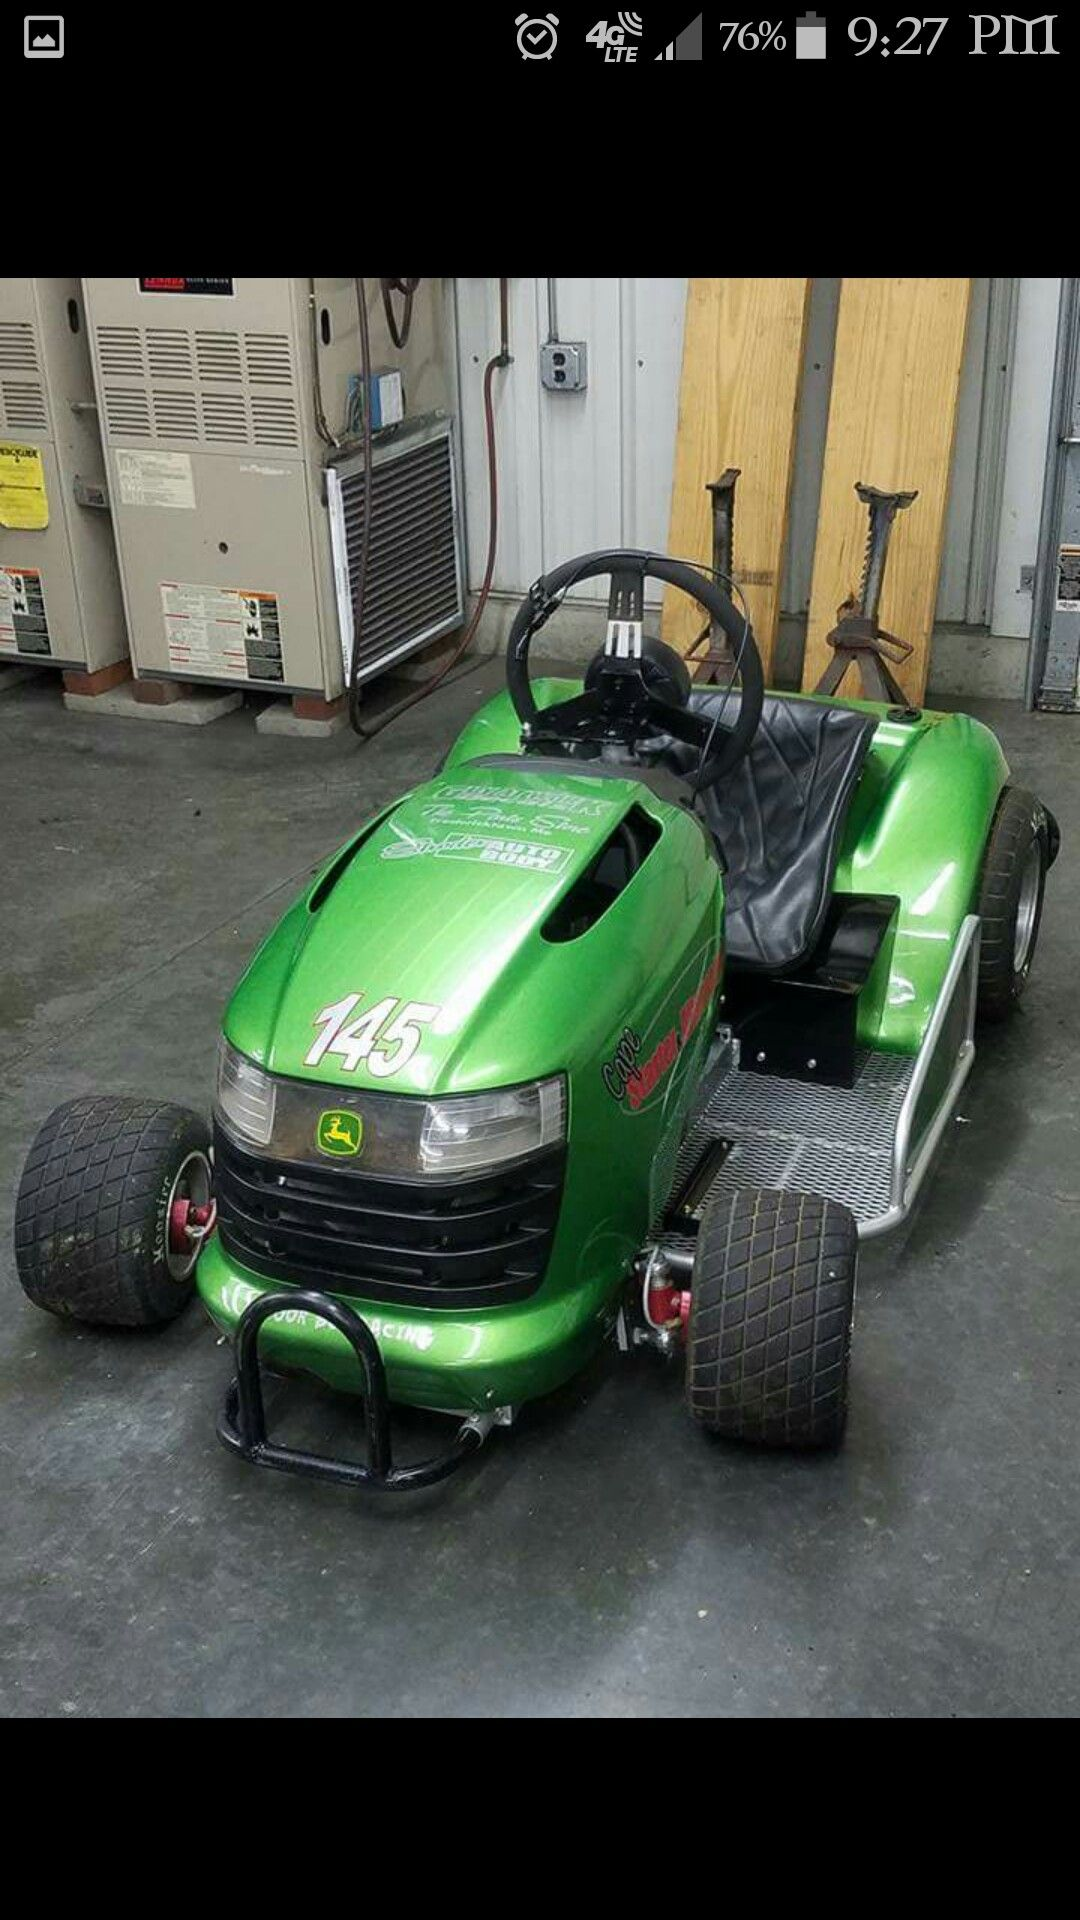 Now Onto Bigger And Faster Things Haha Lawn Mower Racing Lawn Mower Tractor Riding Lawn Mowers